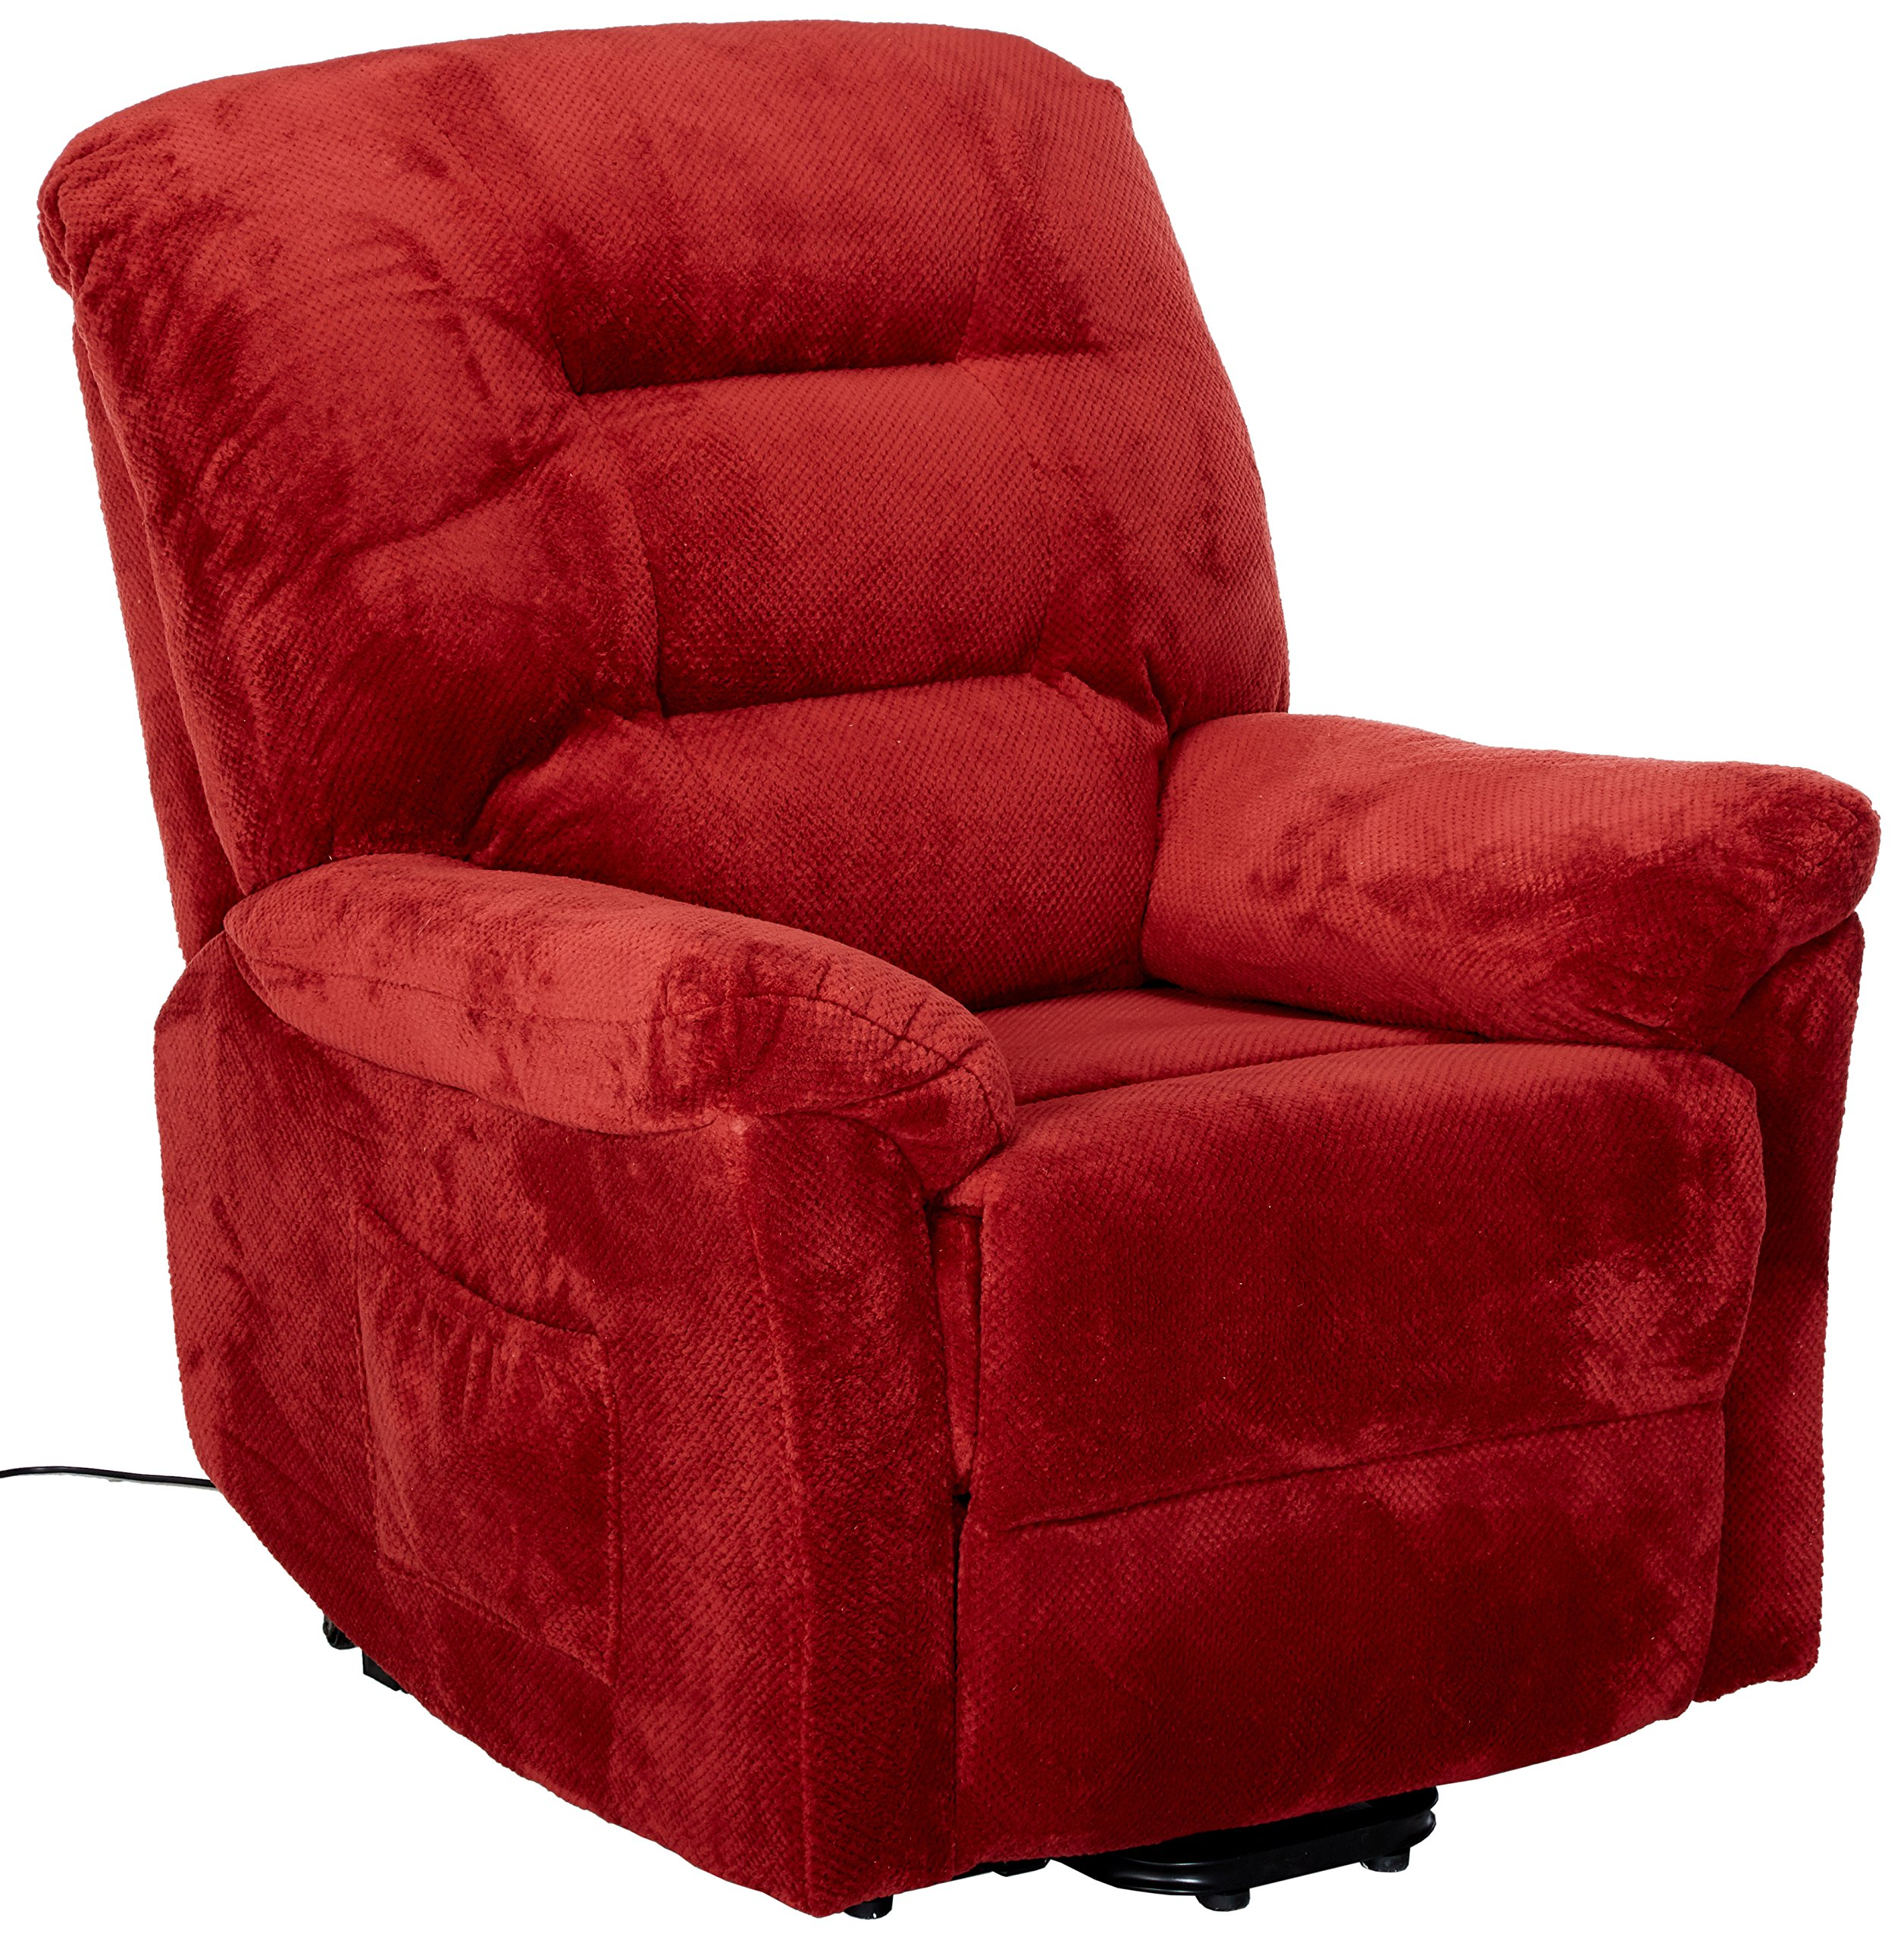 Coaster Home Furnishings  Modern Transitional Power Lift Wall Hugger Recliner Chair with Emergency Backup - Brick Red Textured Chenille